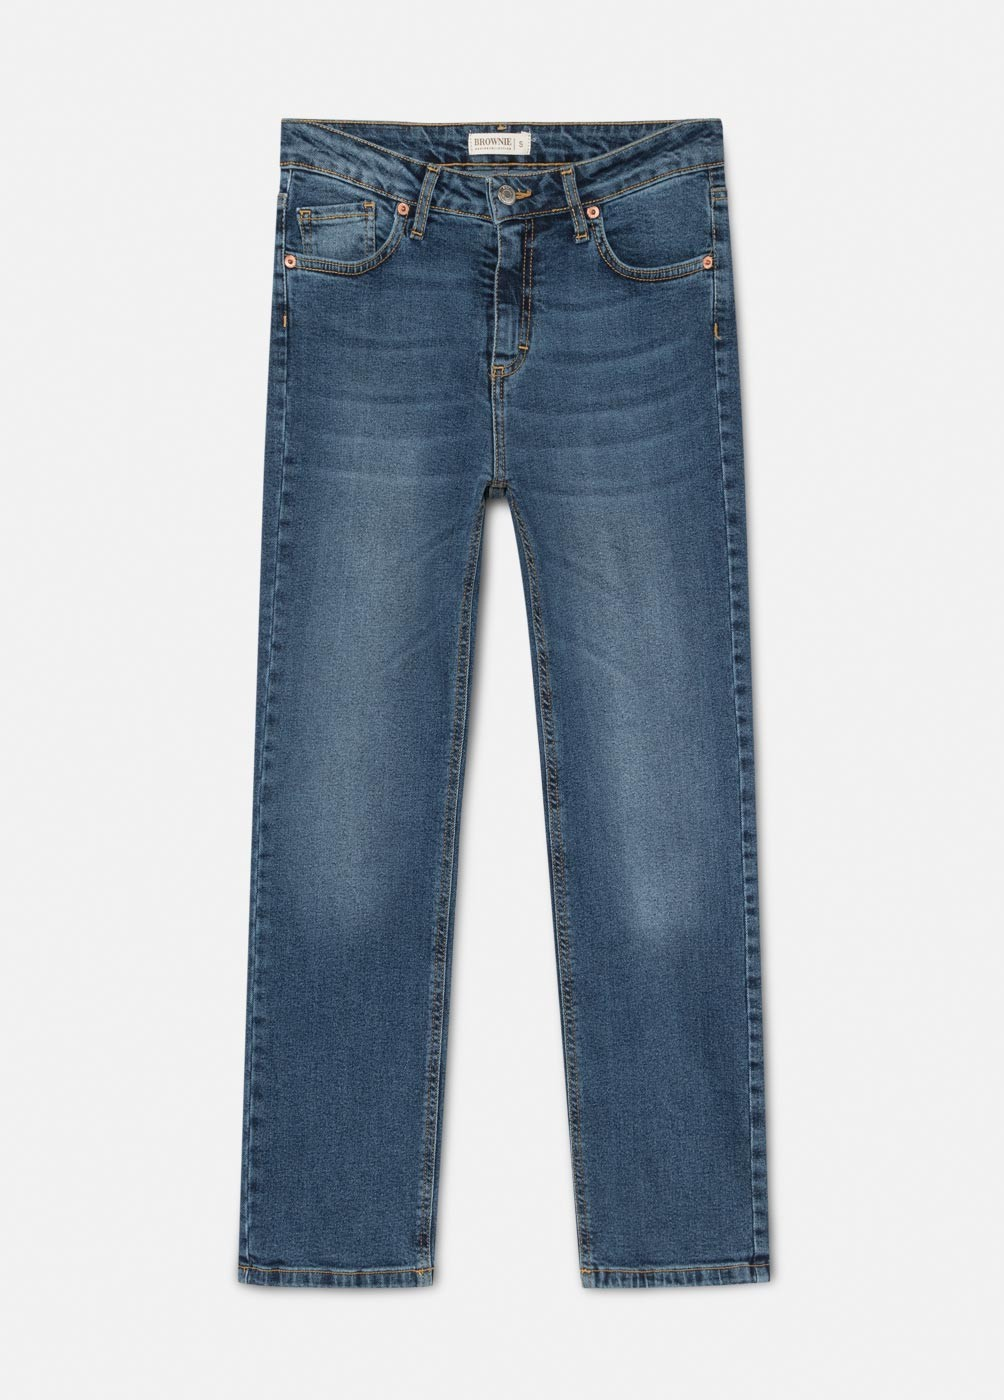 HUGA STRAIGHT FIT JEANS